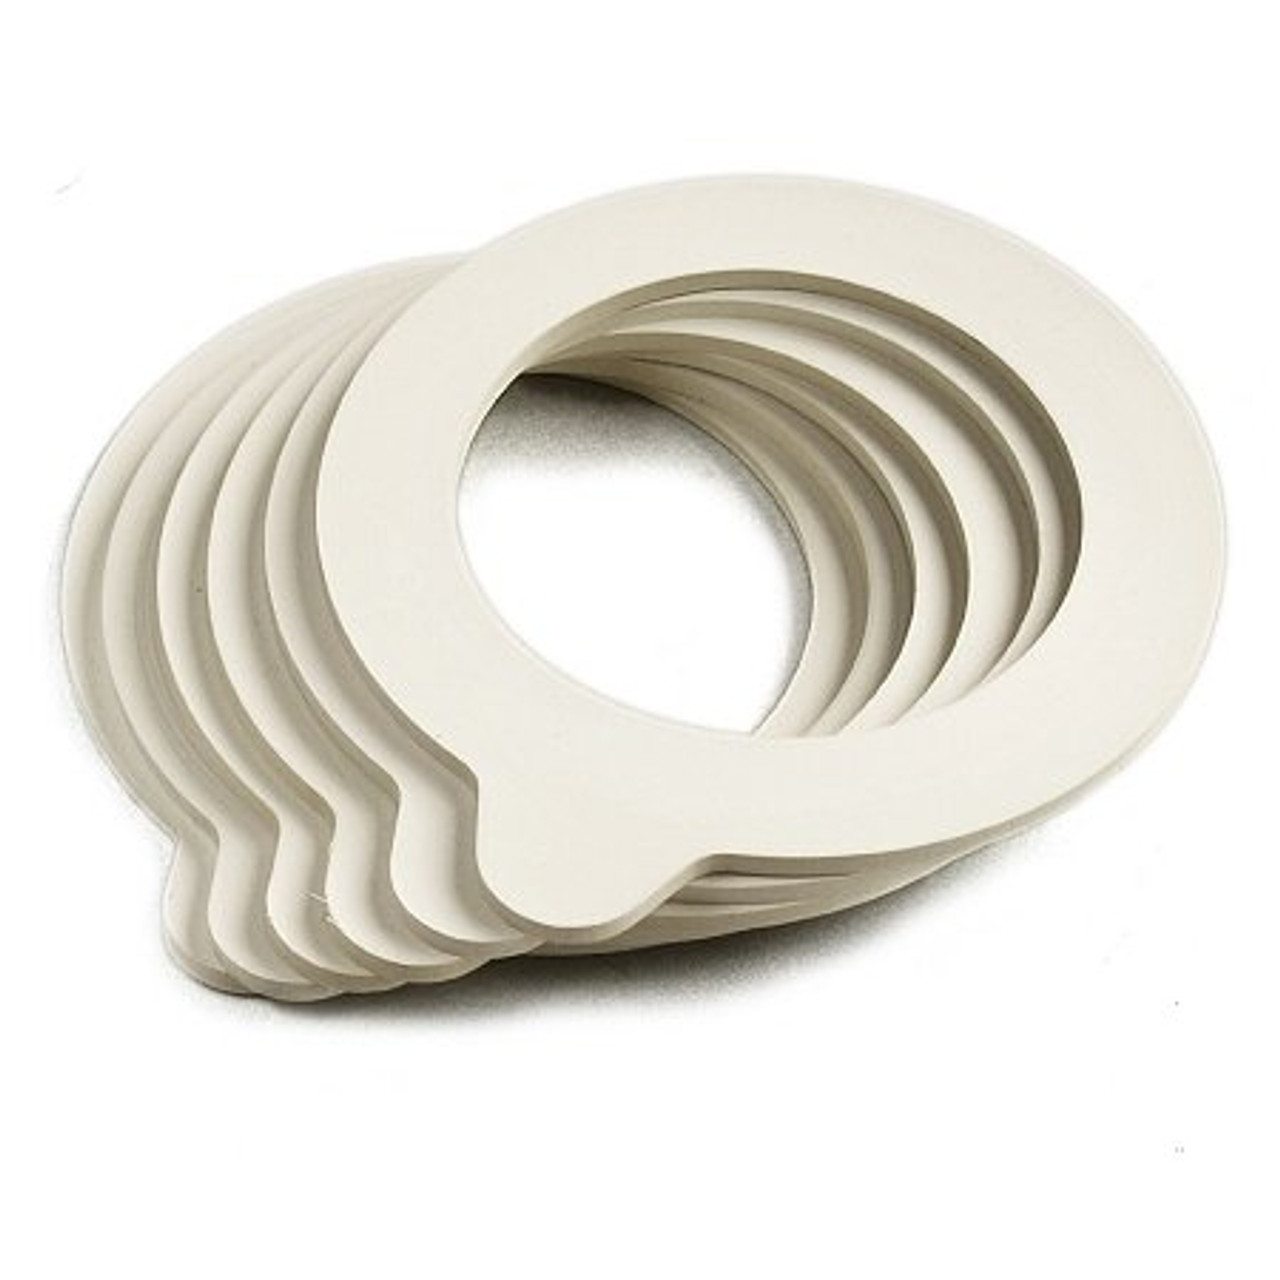 "Bormioli Rocco Small Fido Gaskets - White - 3.25"" (6-1/2#) - Set of 6 (BR 890780M83021990)"